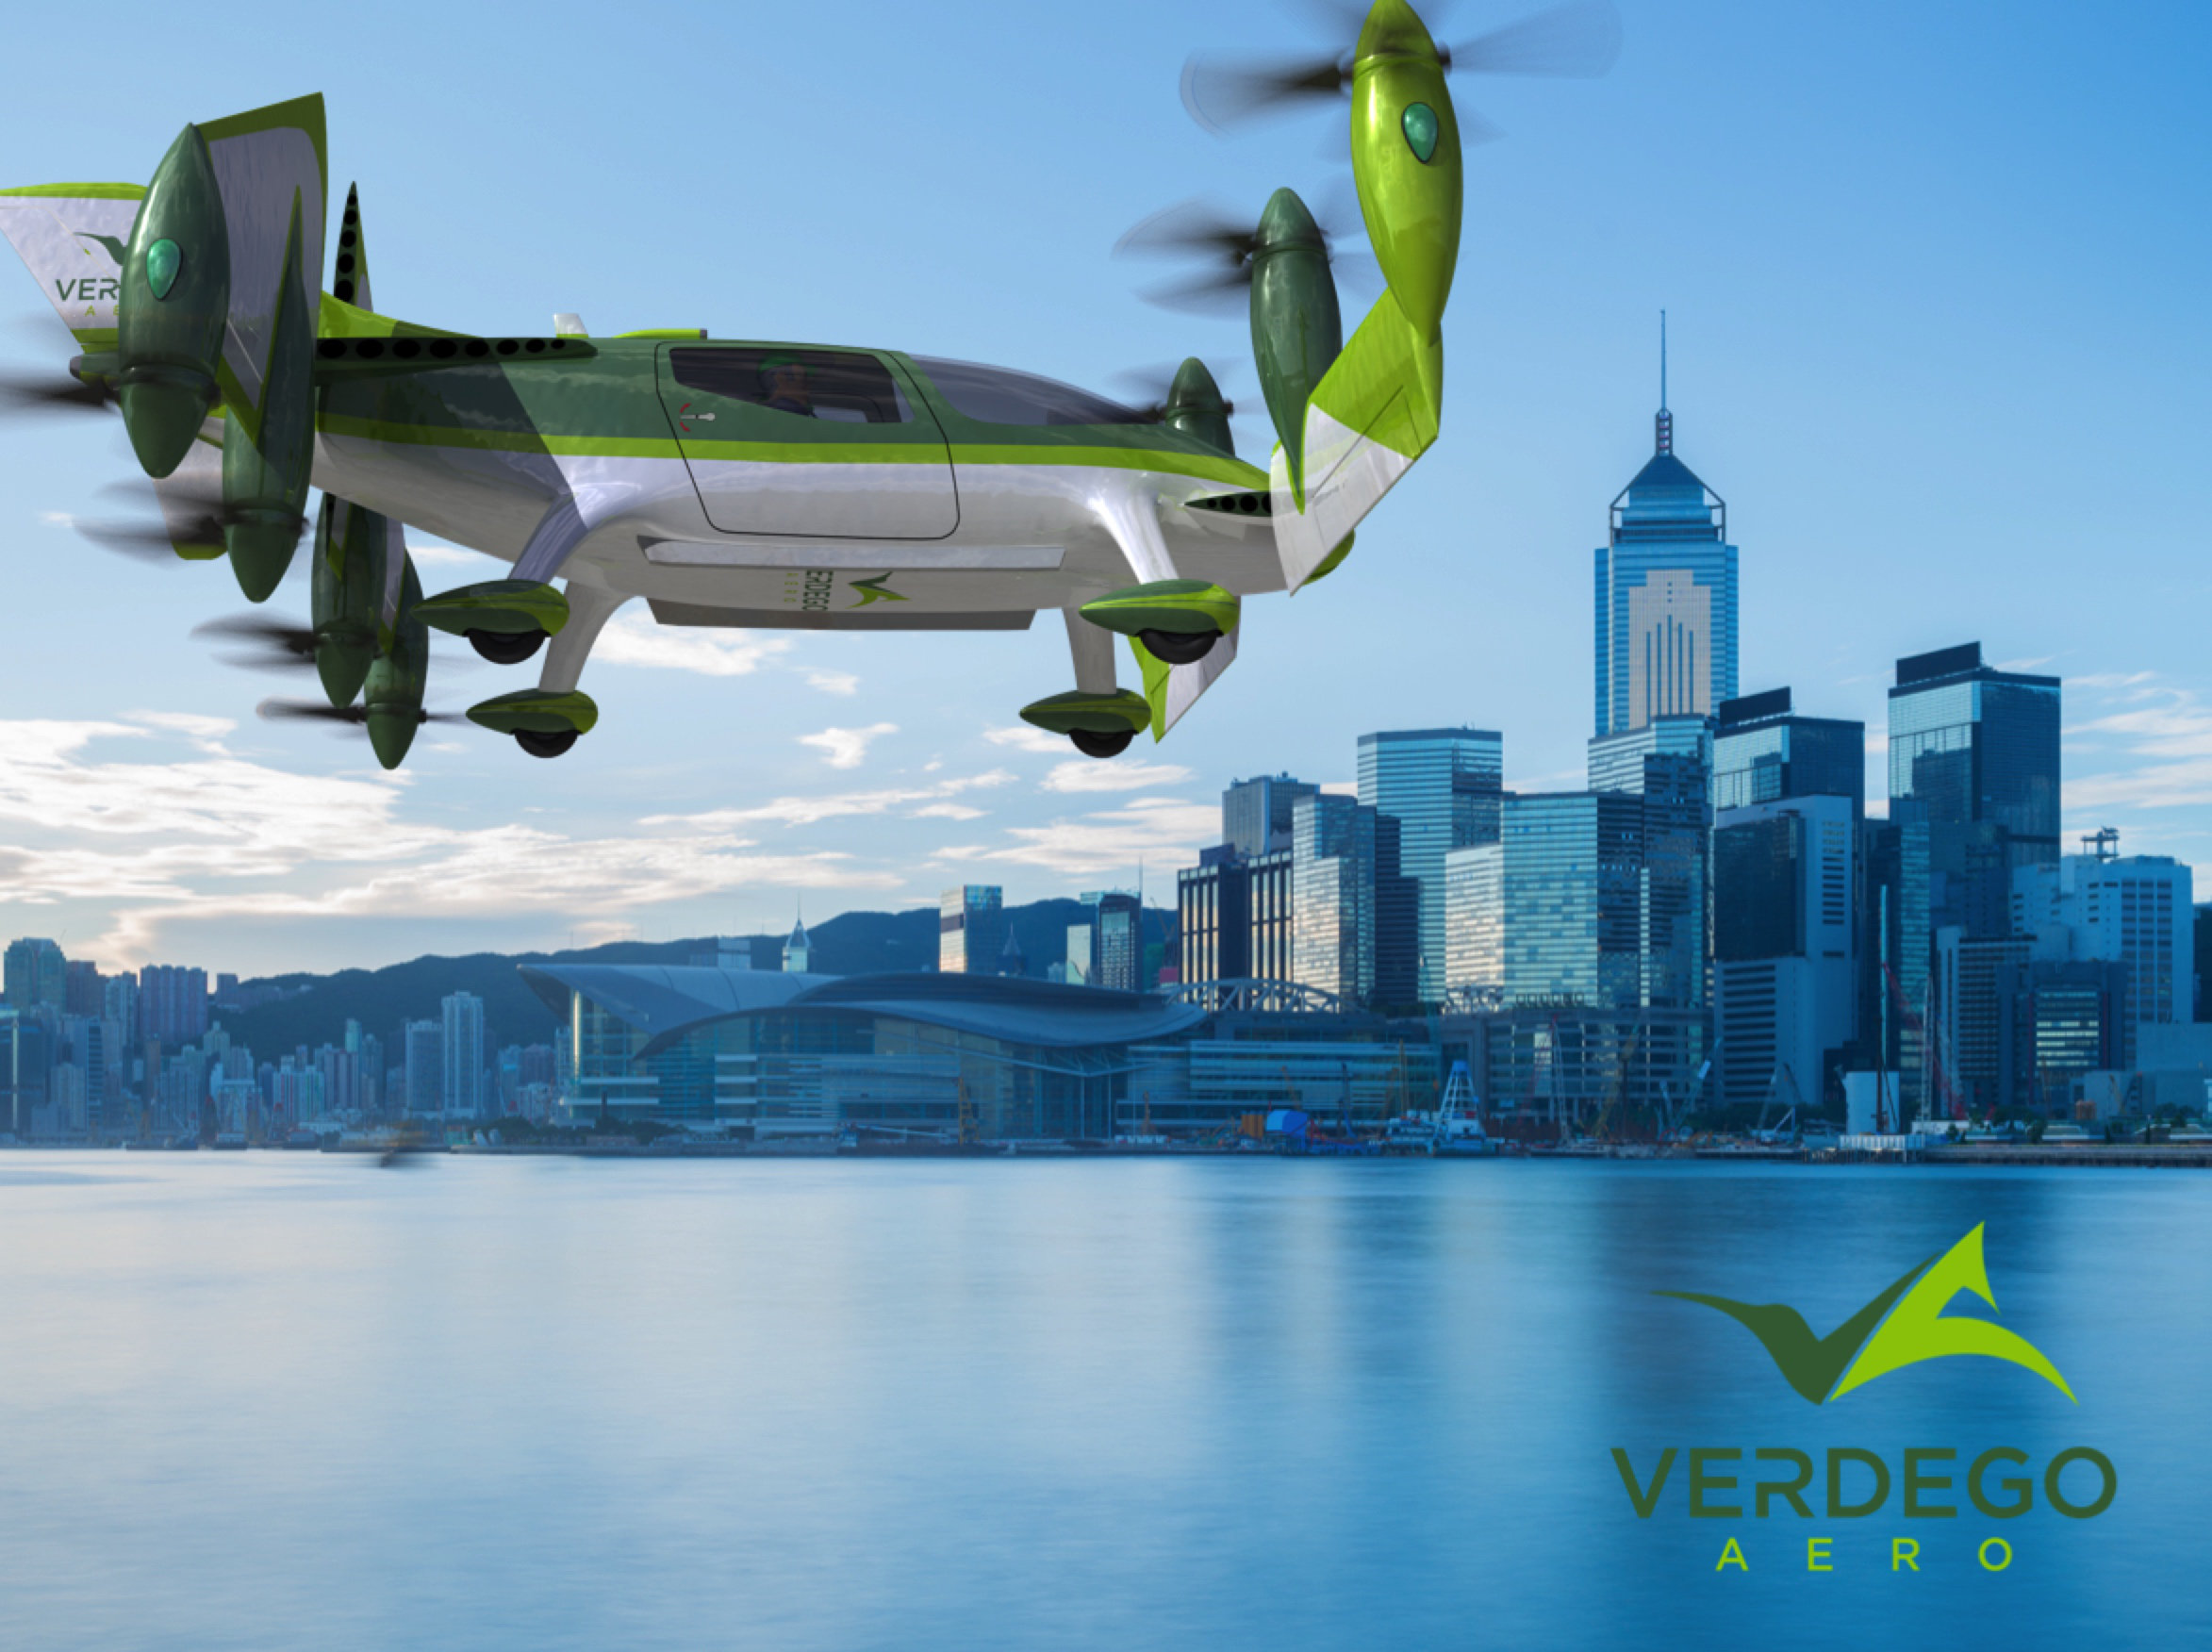 urban air taxi VerdeGo Aero over Hong Kong